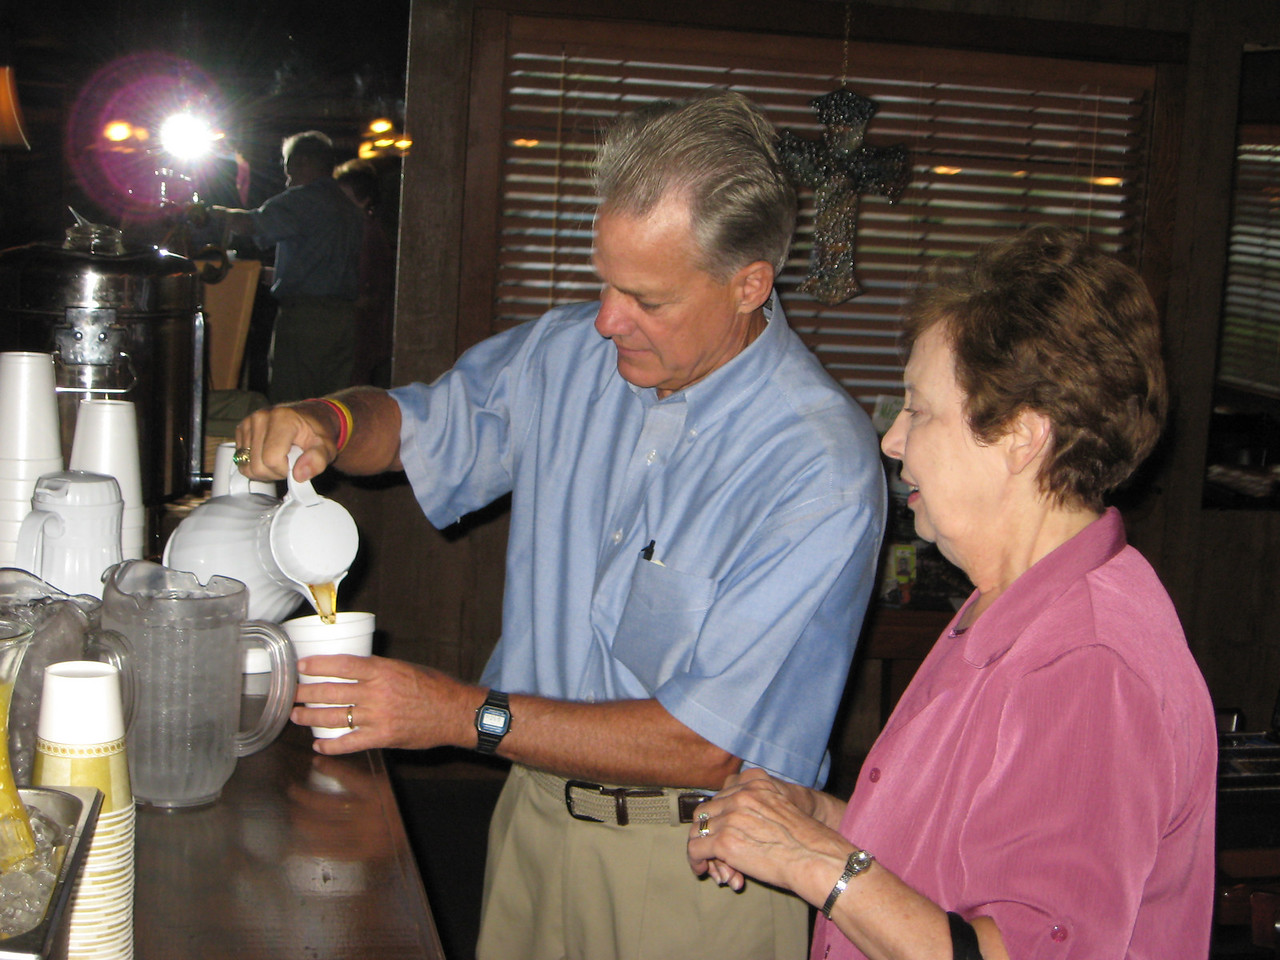 George Wilson pouring coffee for John Burch's wife and guest, Betty.